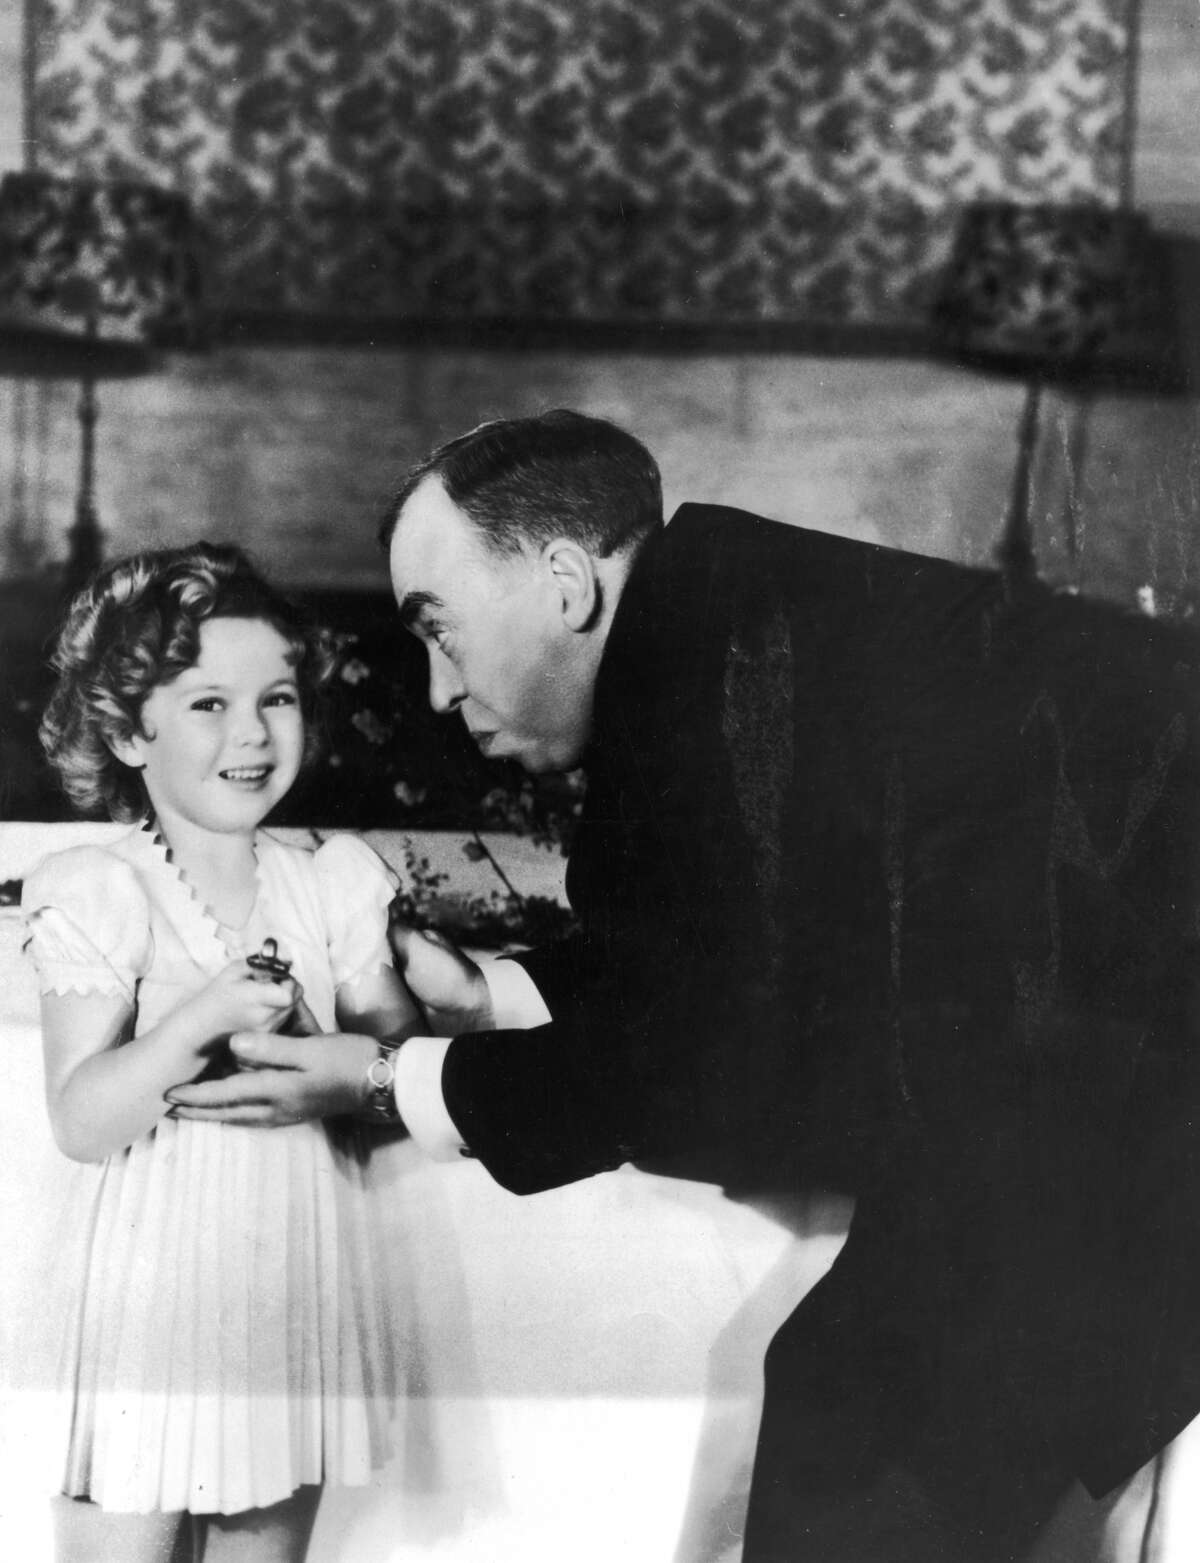 American child actor Shirley Temple receives a special Oscar from American screenwriter Irwin S Cobb at the Academy Awards ceremony in 1934, Biltmore Bowl, Biltmore Hotel, Los Angeles, California.